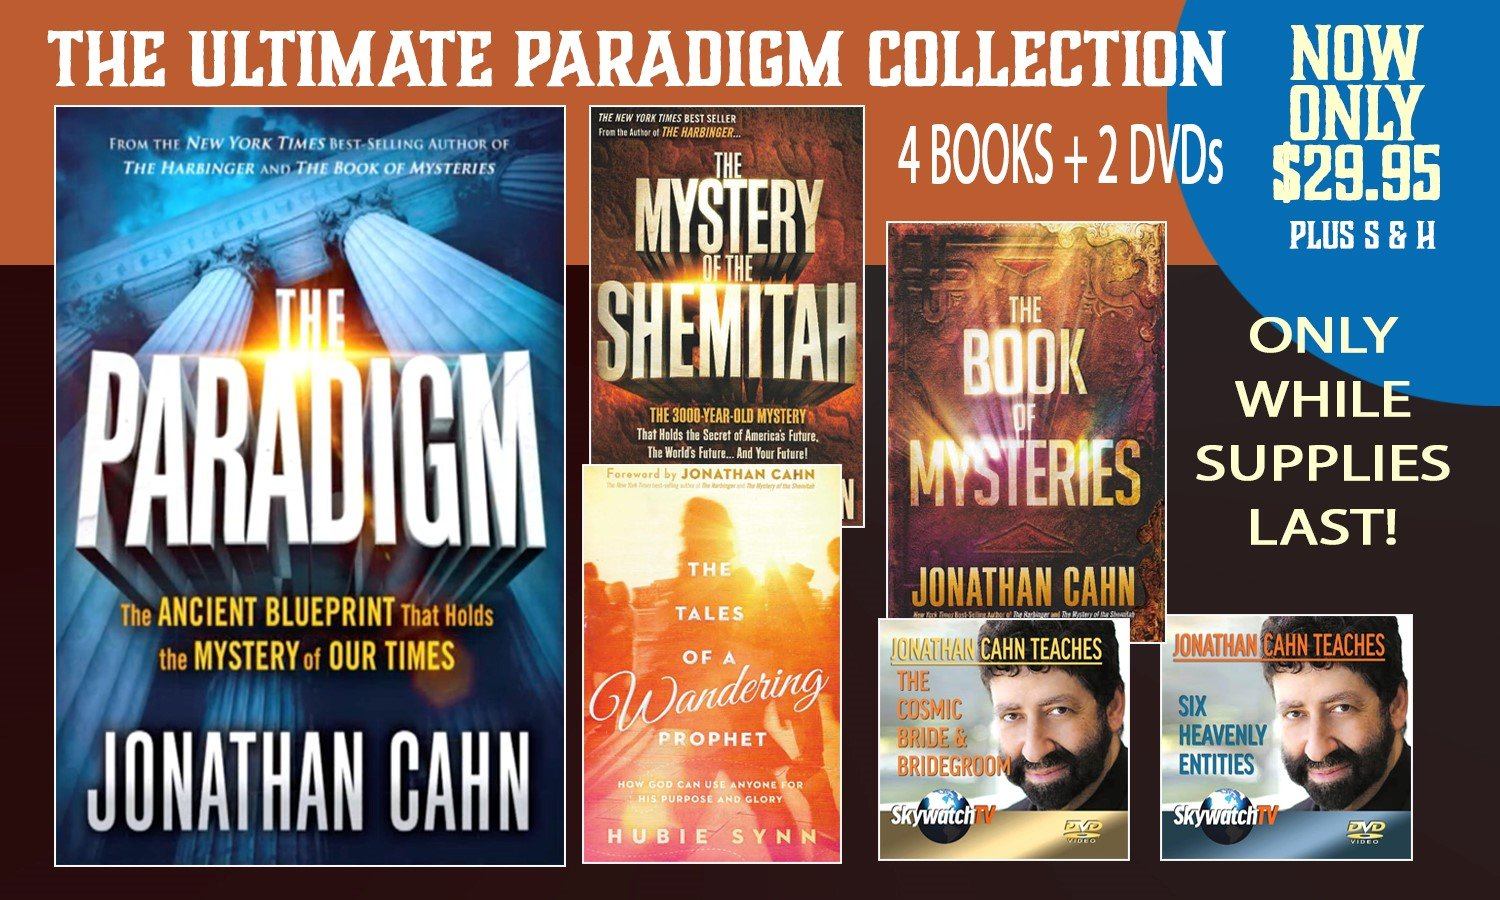 FREE SKYWATCH EXCLUSIVE! The Ultimate Paradigm Collection -- FREE BOOKS & DVDS!